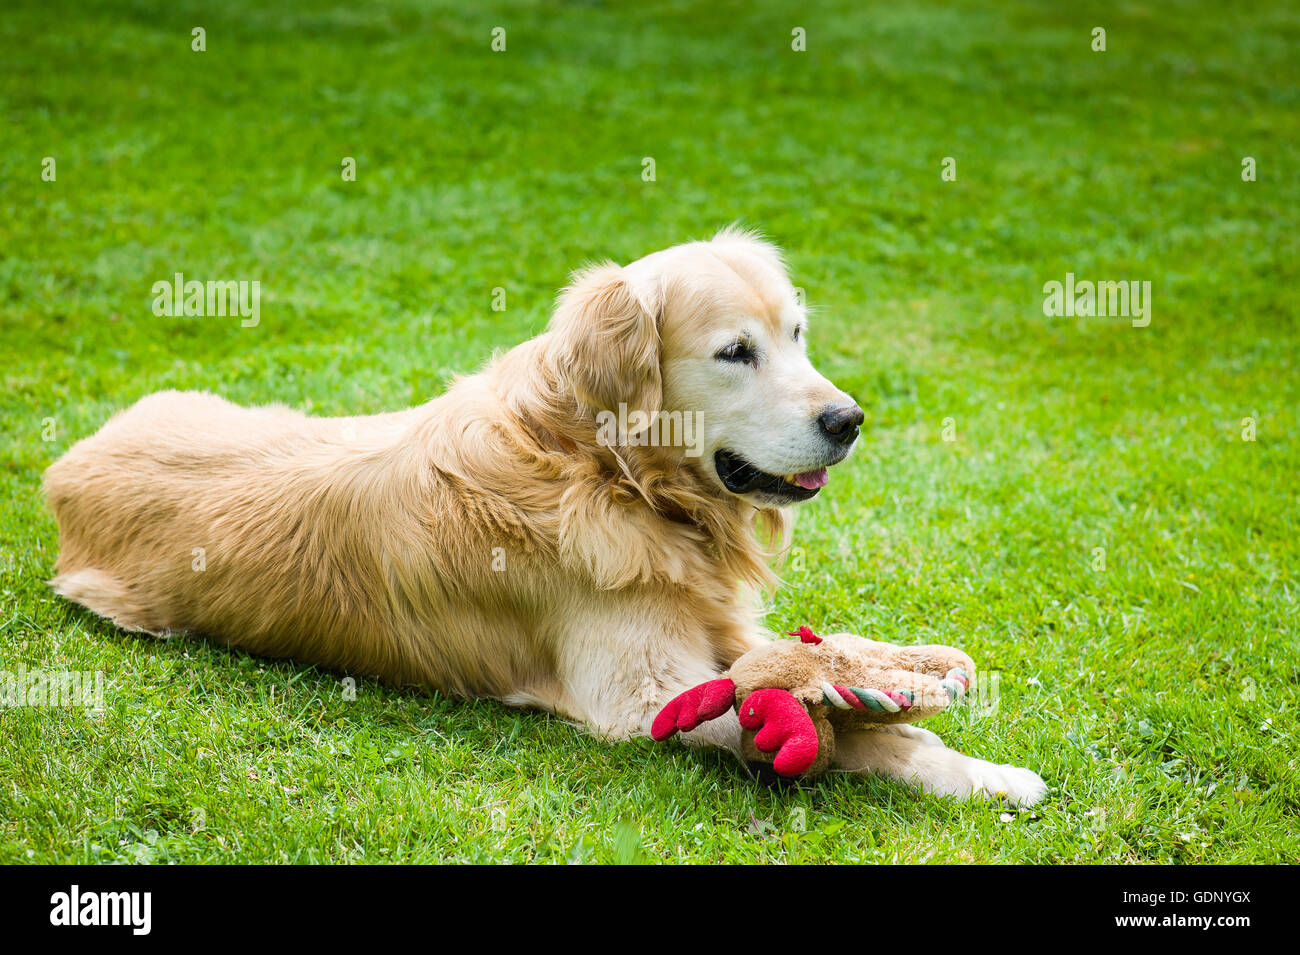 Golden retriever dog on lawn resting with his soft toy - Stock Image